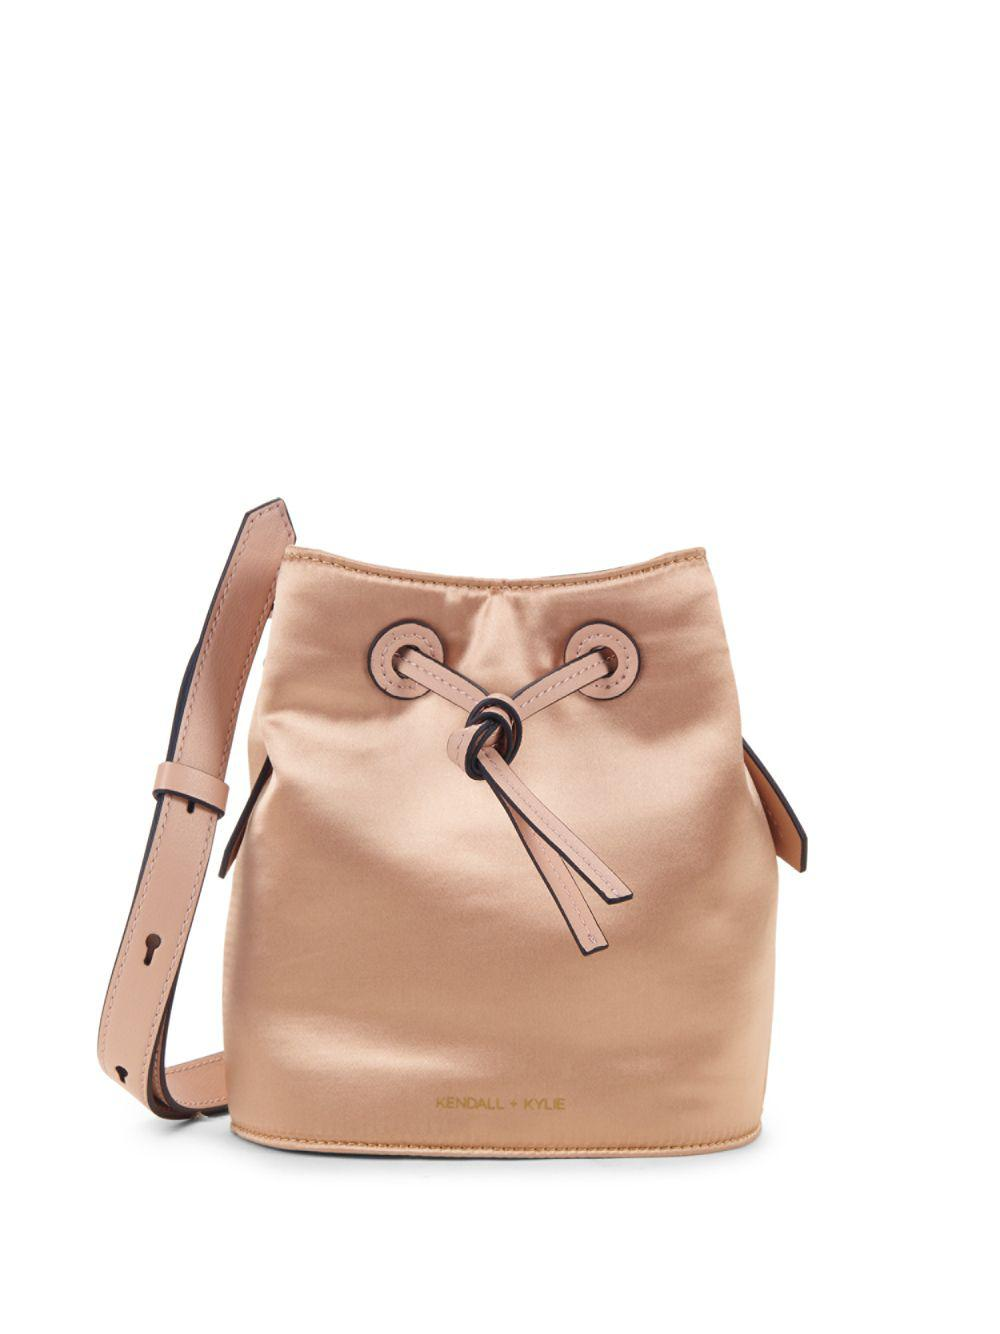 12a3218c3c Lyst - Kendall + Kylie Micro Satin Drawstring Bucket Bag in Natural